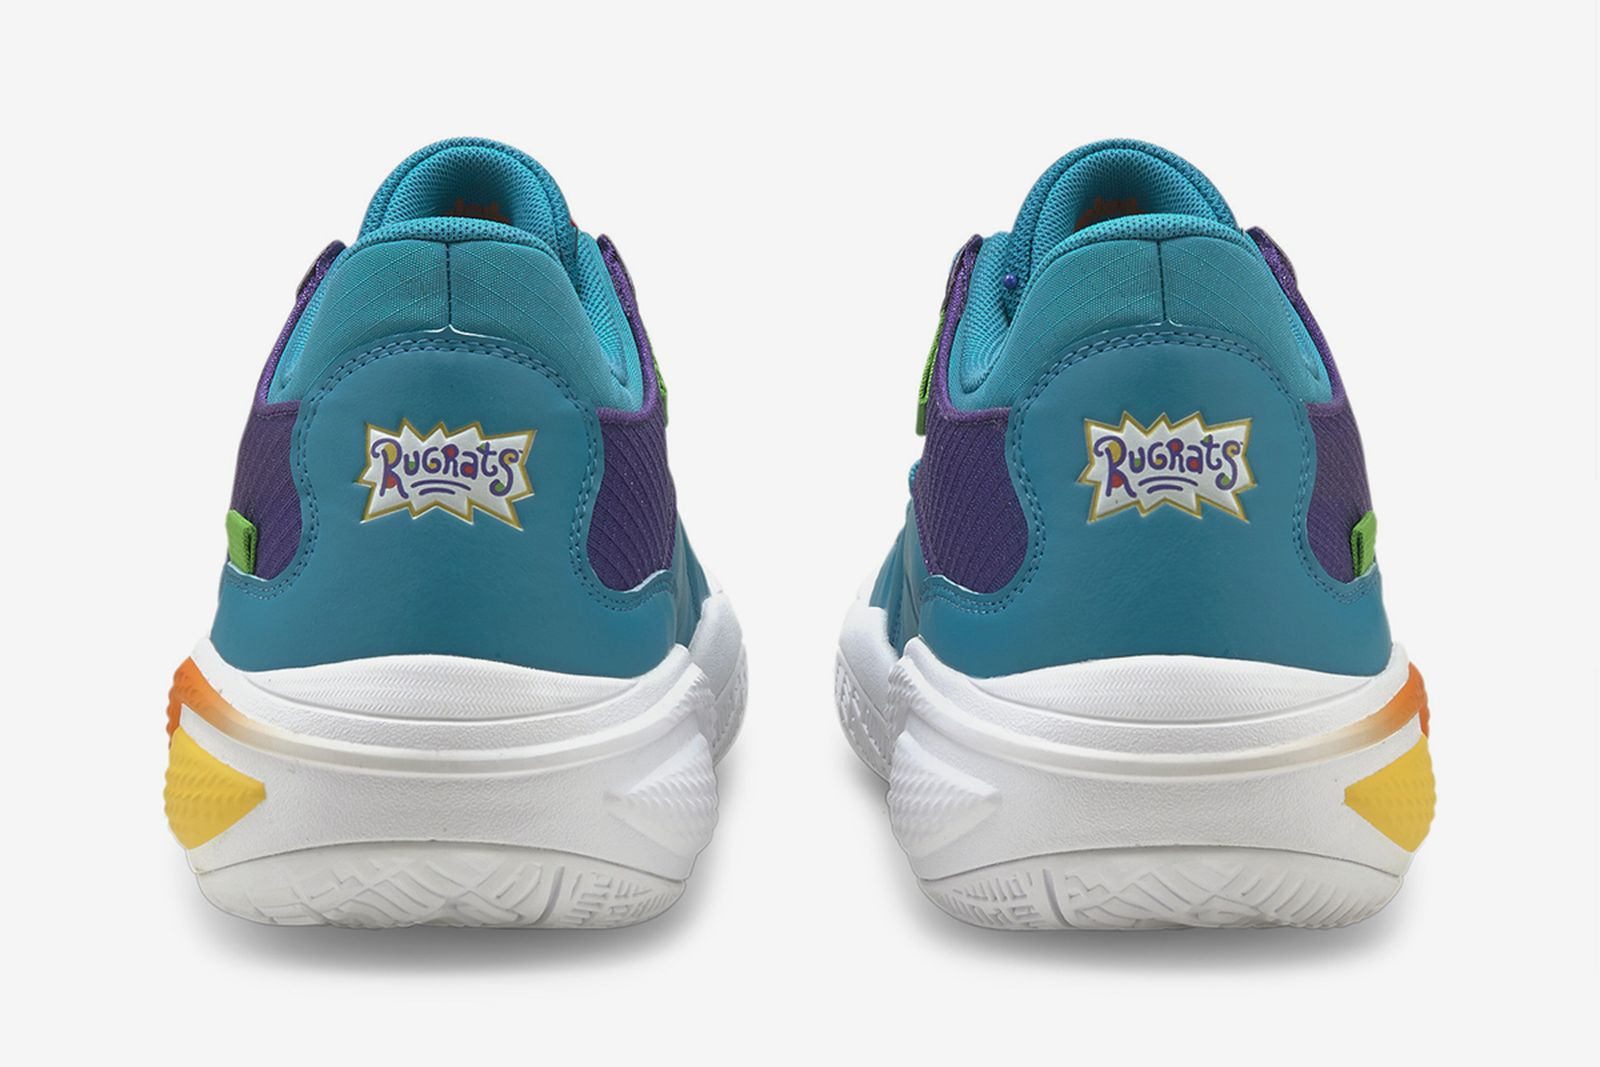 puma-rugrats-collection-release-date-price-04